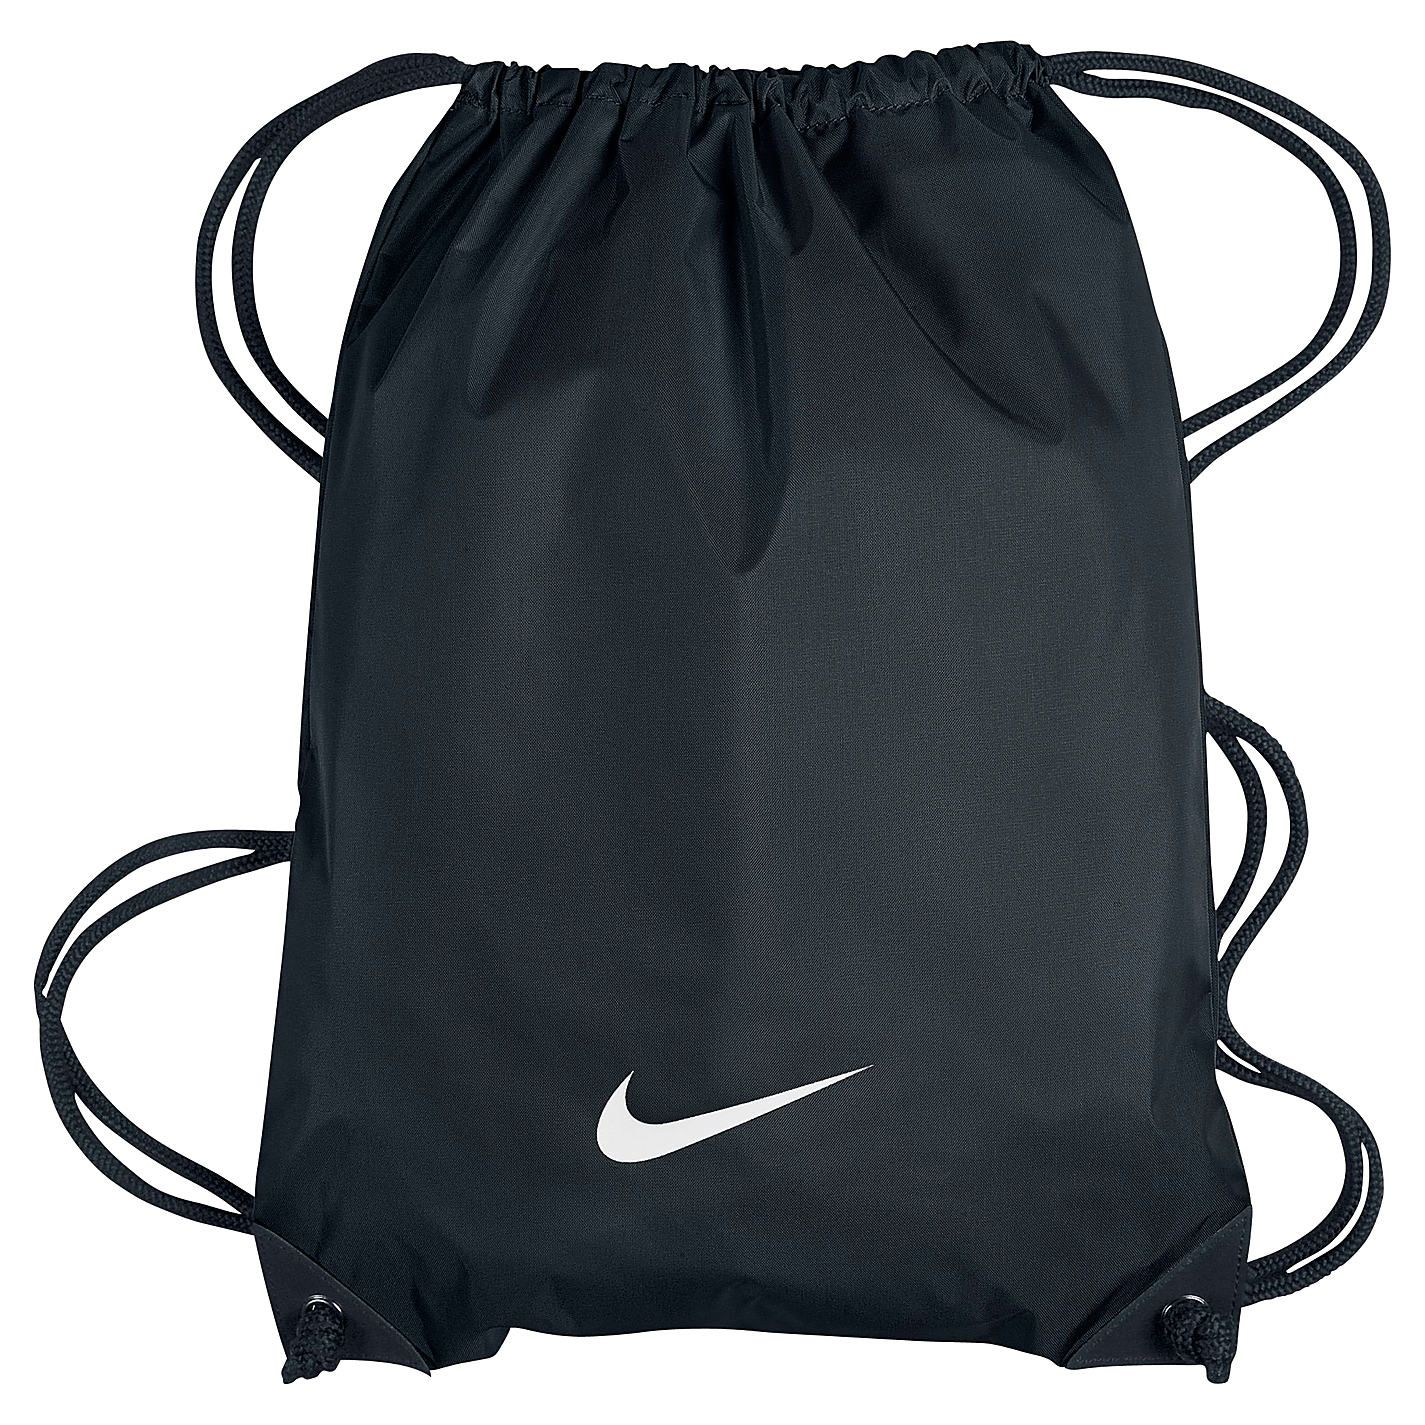 black nike drawstring bag | Theo | Pinterest